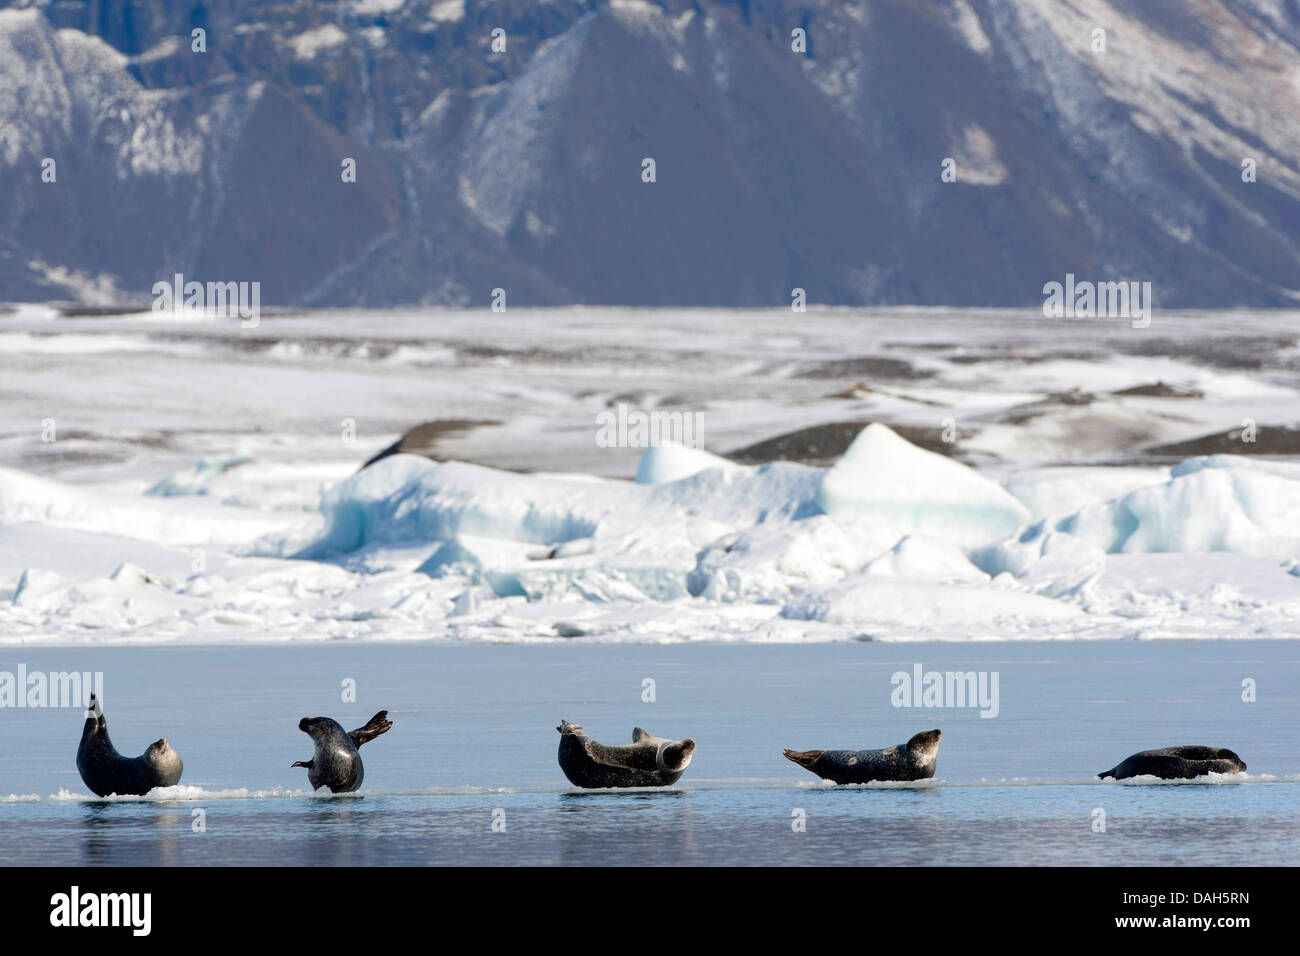 harbor seal, common seal (Phoca vitulina), several seals lying on ice sheet in the iceland glacier lagoon, Iceland - Stock Image